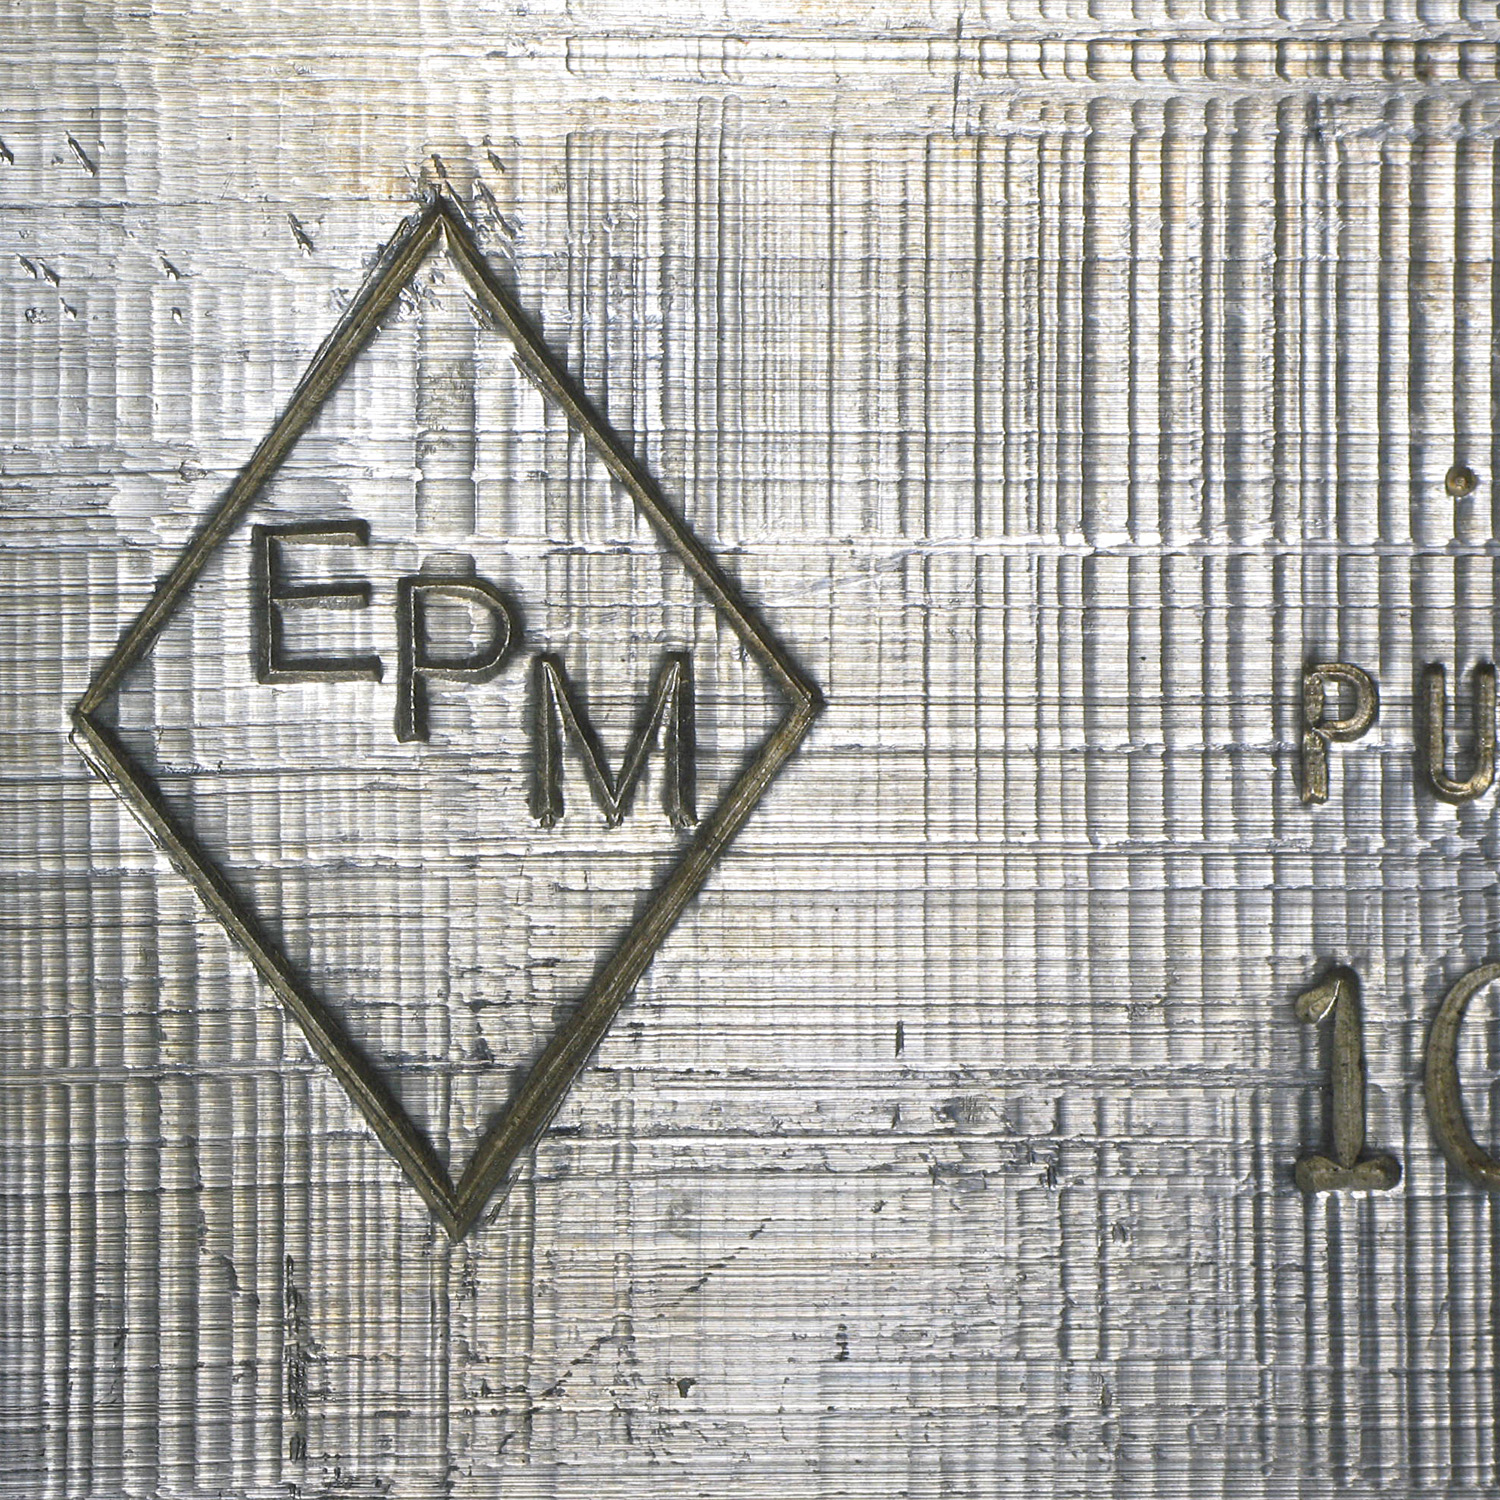 100.05 oz Silver Bars - EPM Silver Bar